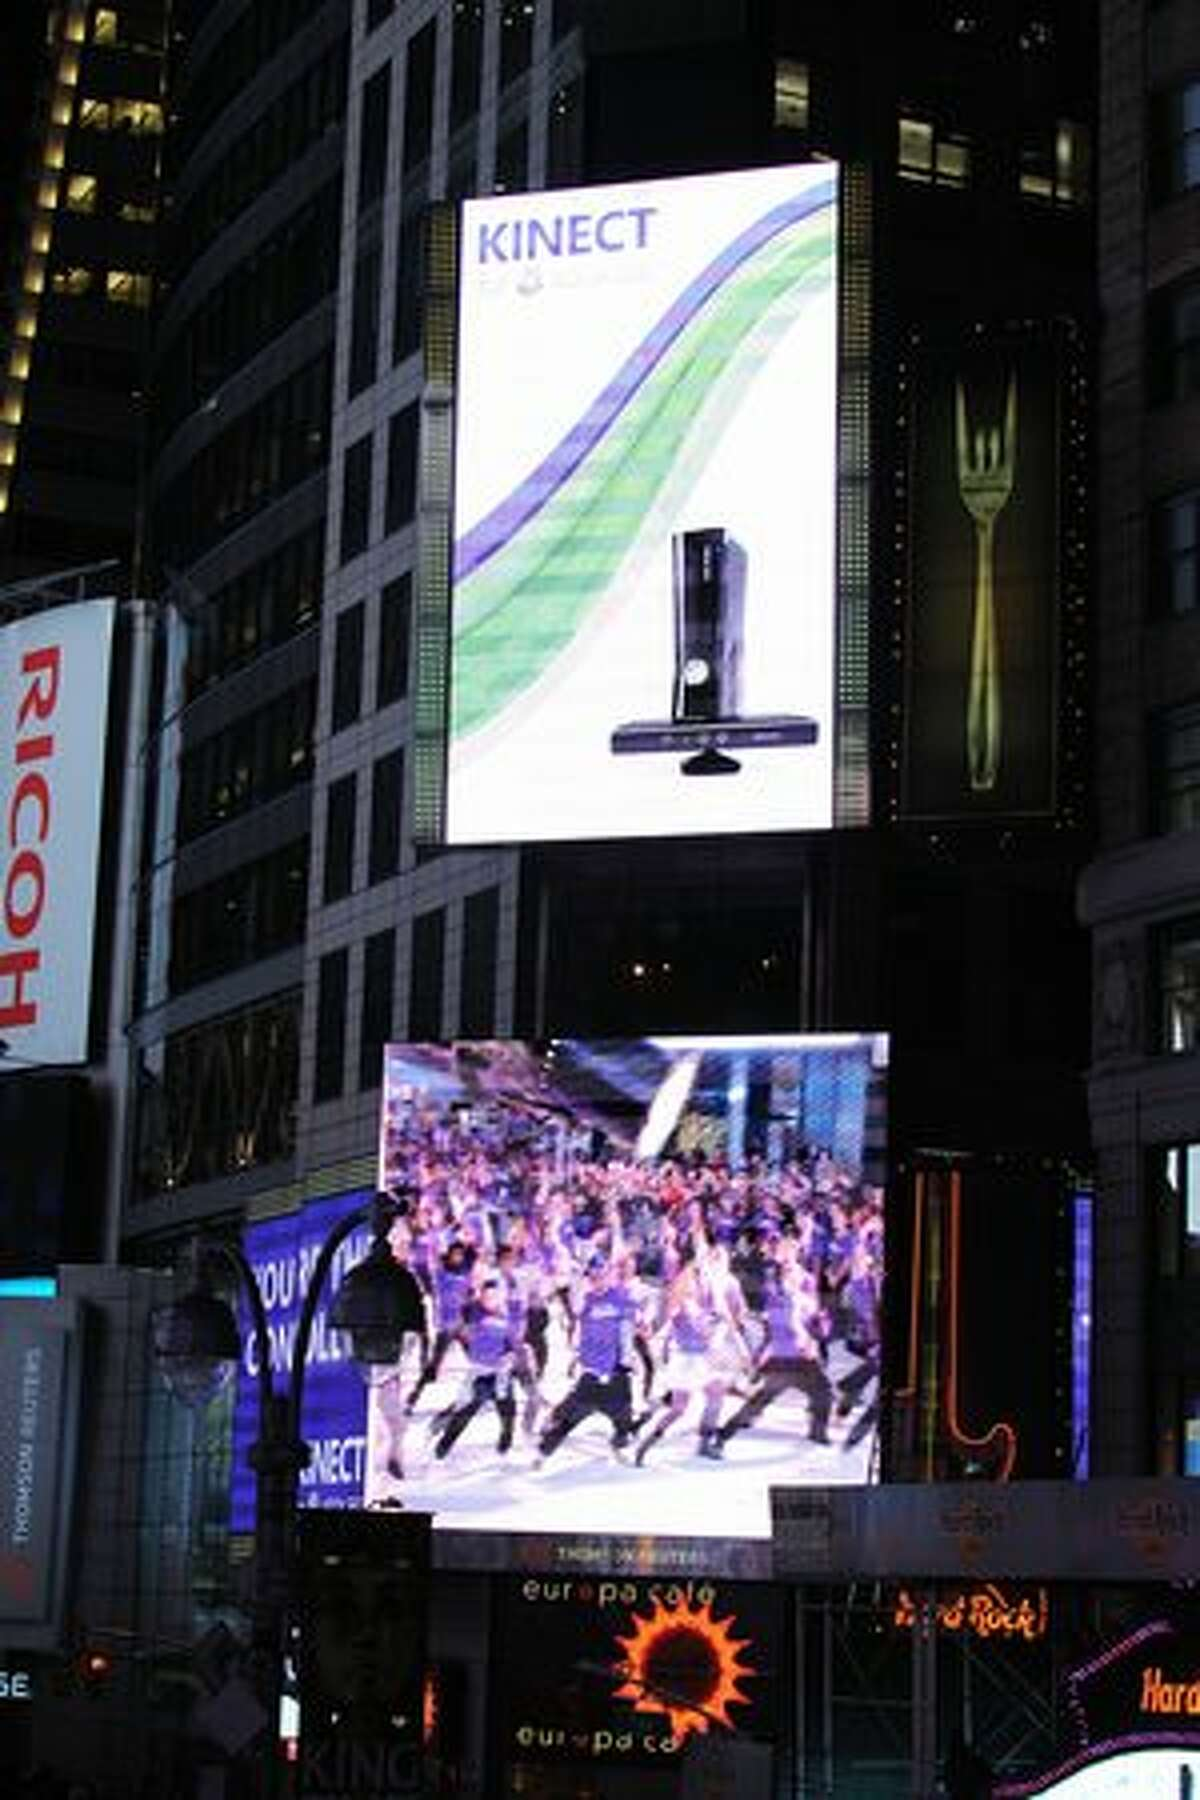 Microsoft took over Times Square on Wednesday, draping it in purple and hosting a dance party with thousands to celebrate the launch of its newest product, Kinect for Xbox 360.